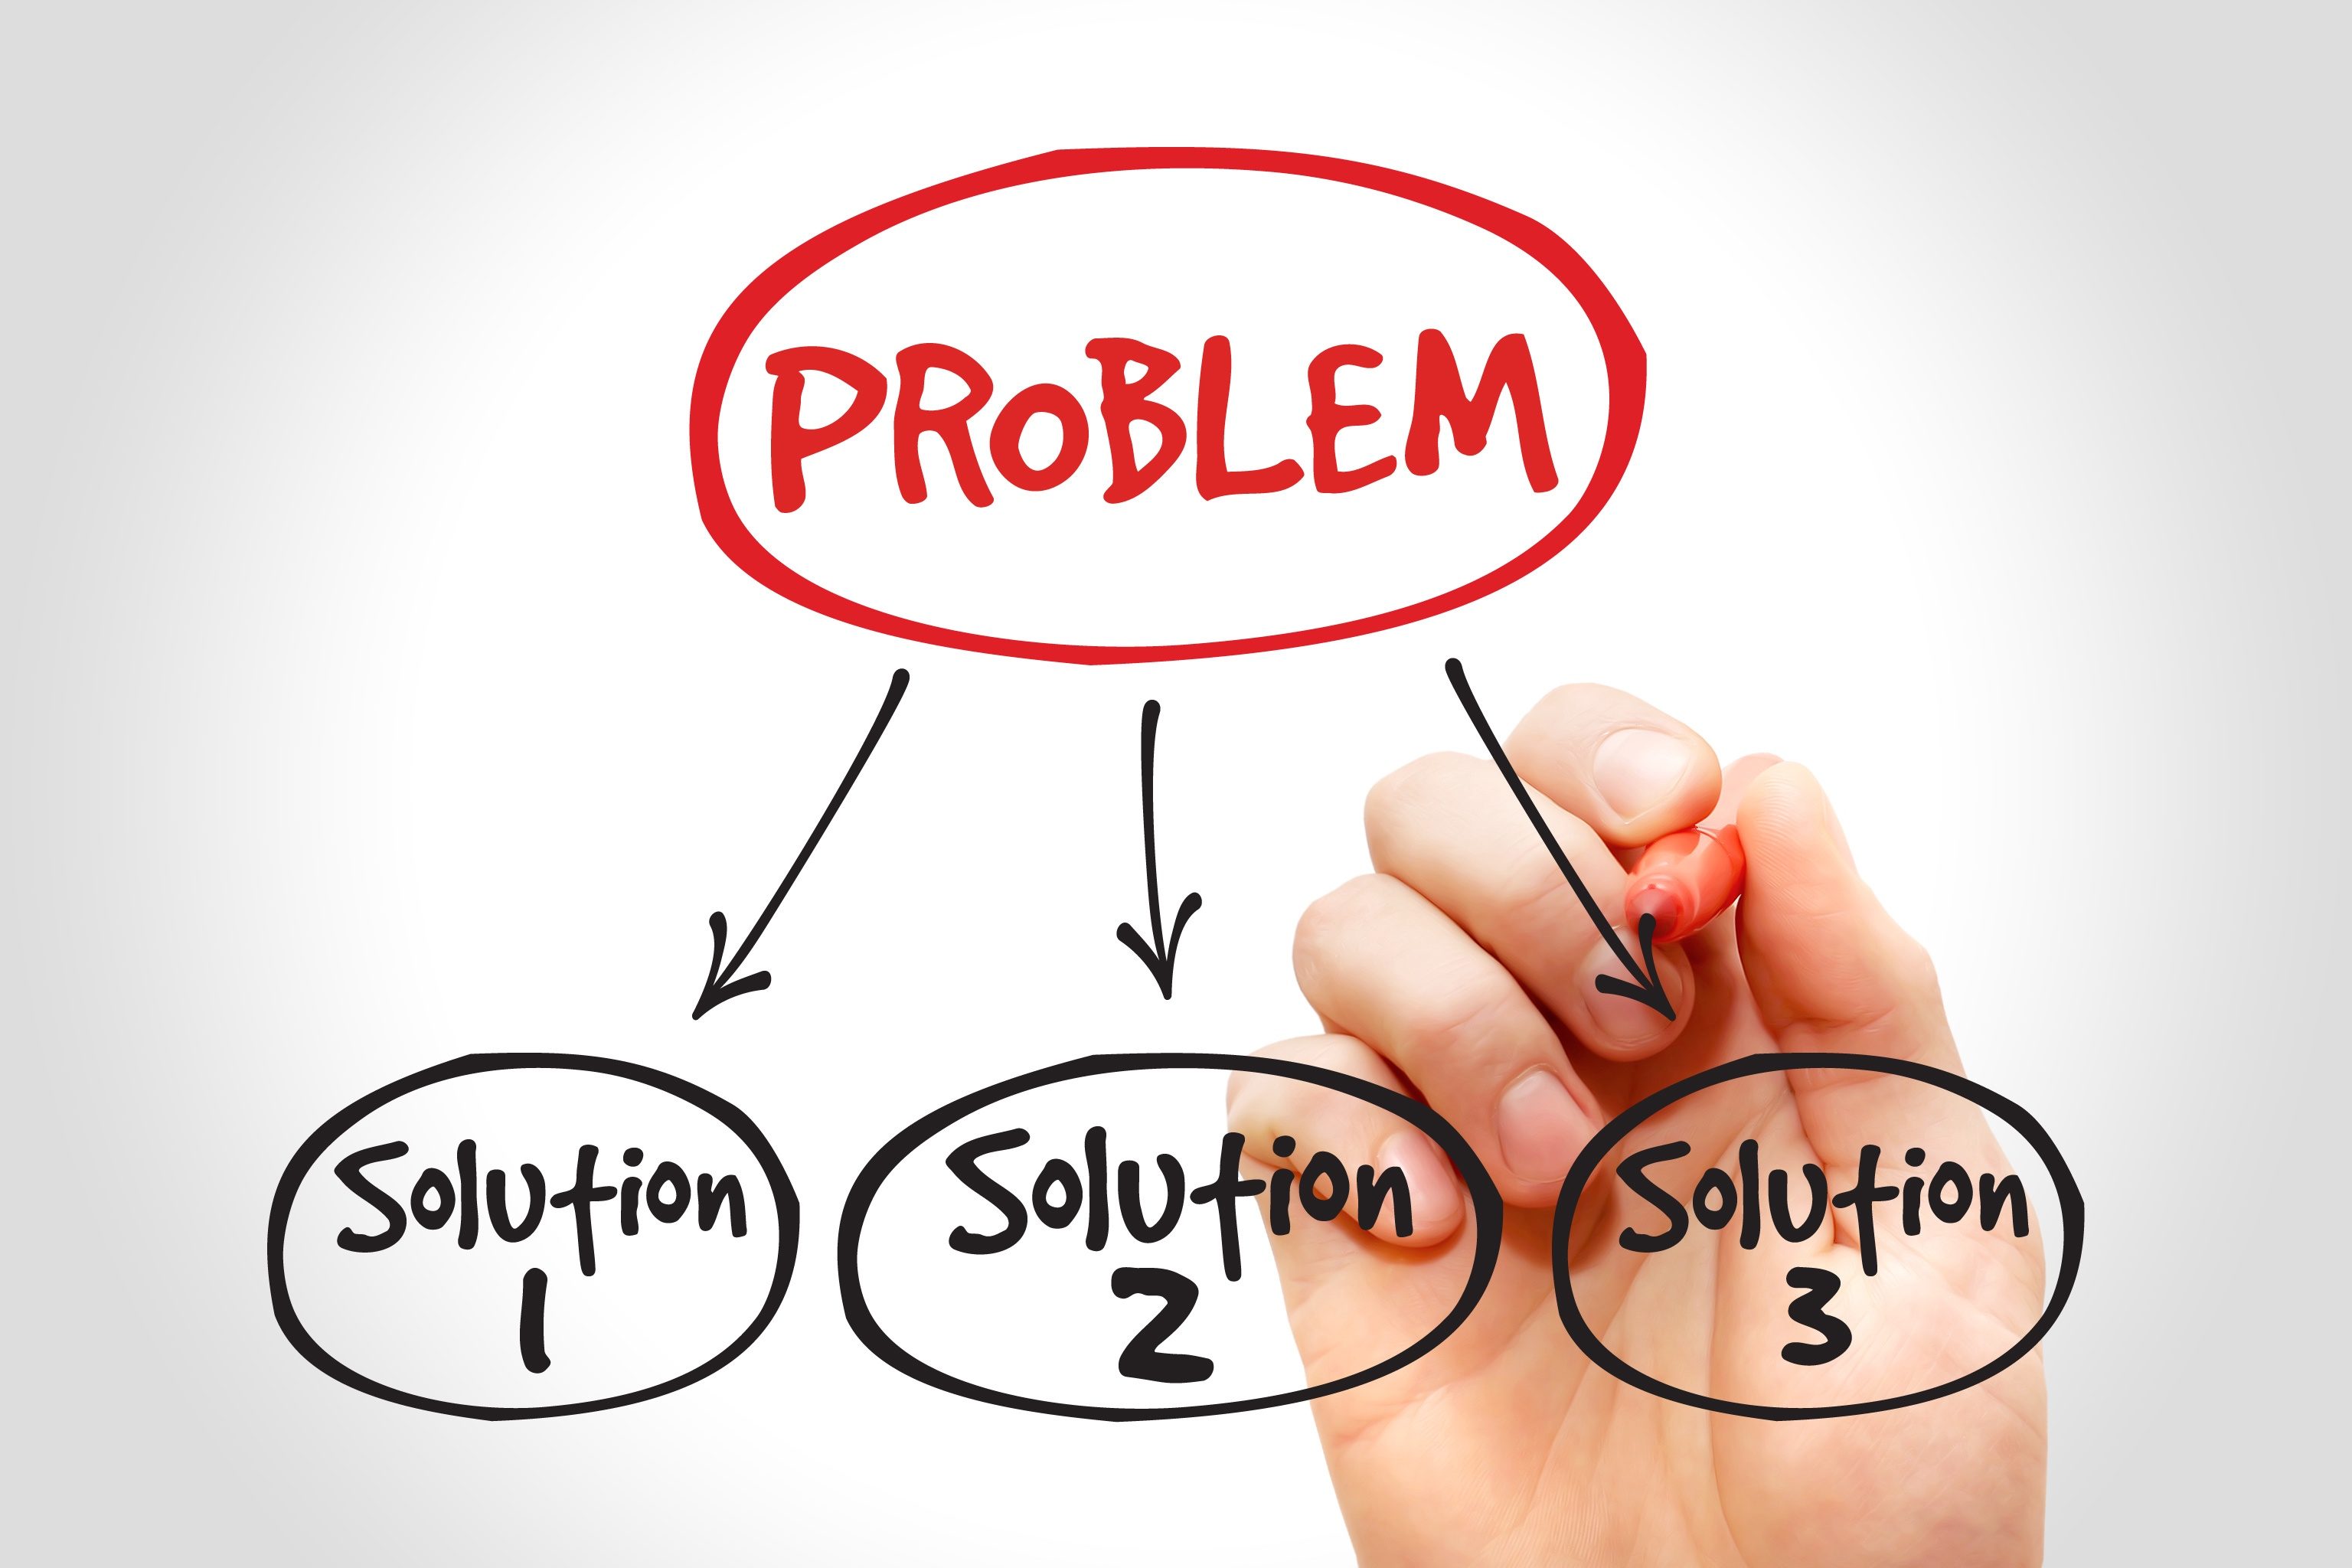 Evaluating Options for Solving Problems